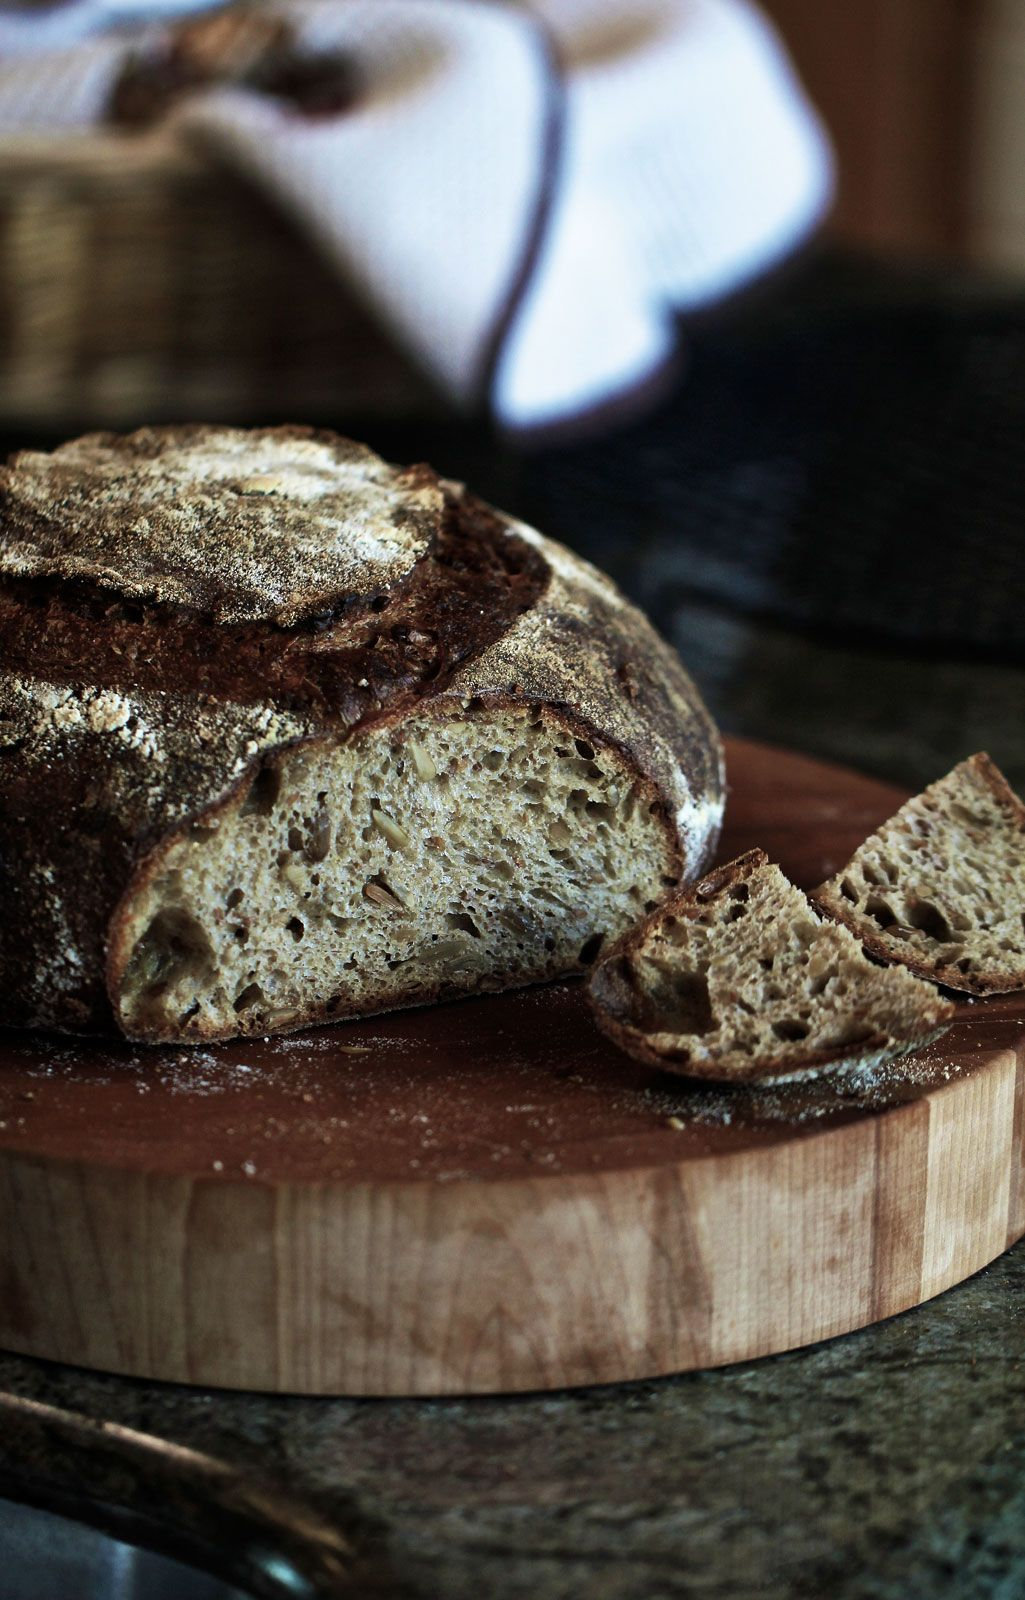 Chad Robertson's Country Wholewheat-Rye Bread With Flax and Sun Flower Seeds